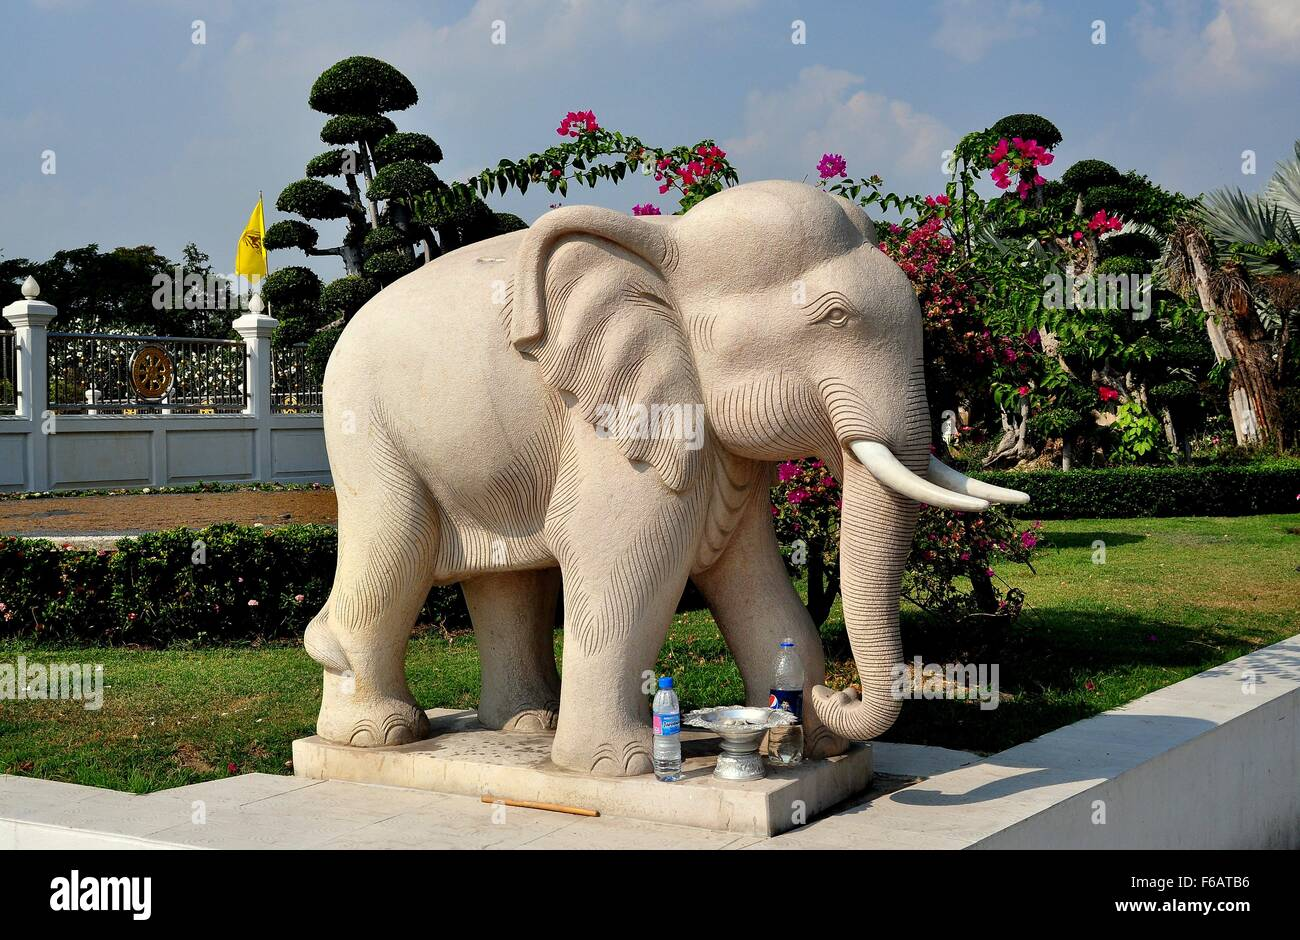 Samut Prakan, Thailand: Statue of a revered Thai elephant complete with two plastic bottles of water left as offerings - Stock Image